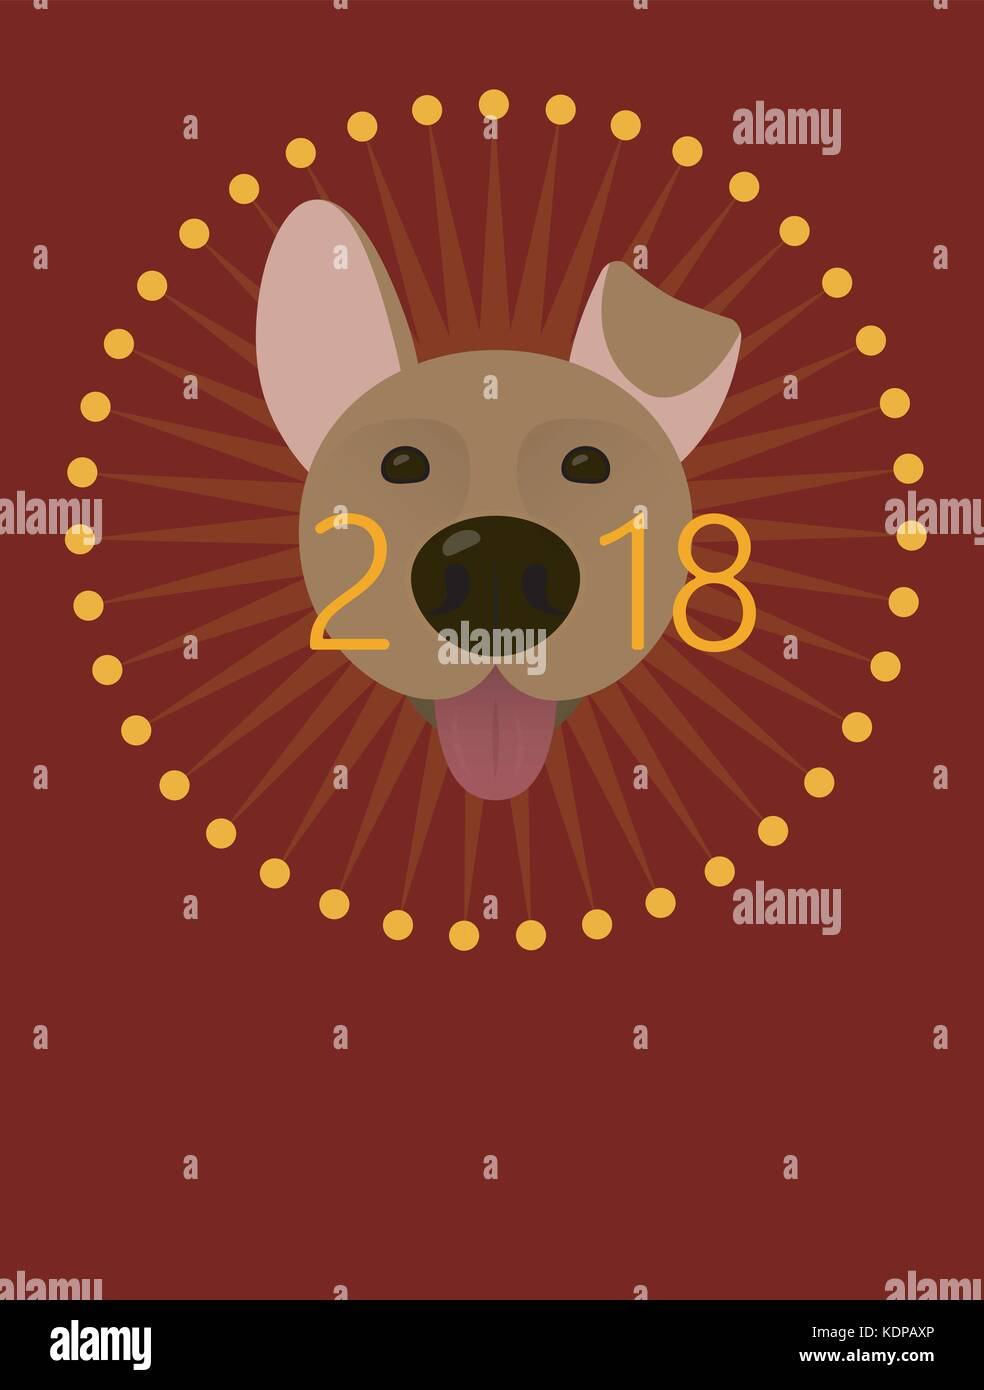 2018 happy new year greeting card poster celebration background 2018 happy new year greeting card poster celebration background with dog 2018 chinese new year of the dog vector illustration m4hsunfo